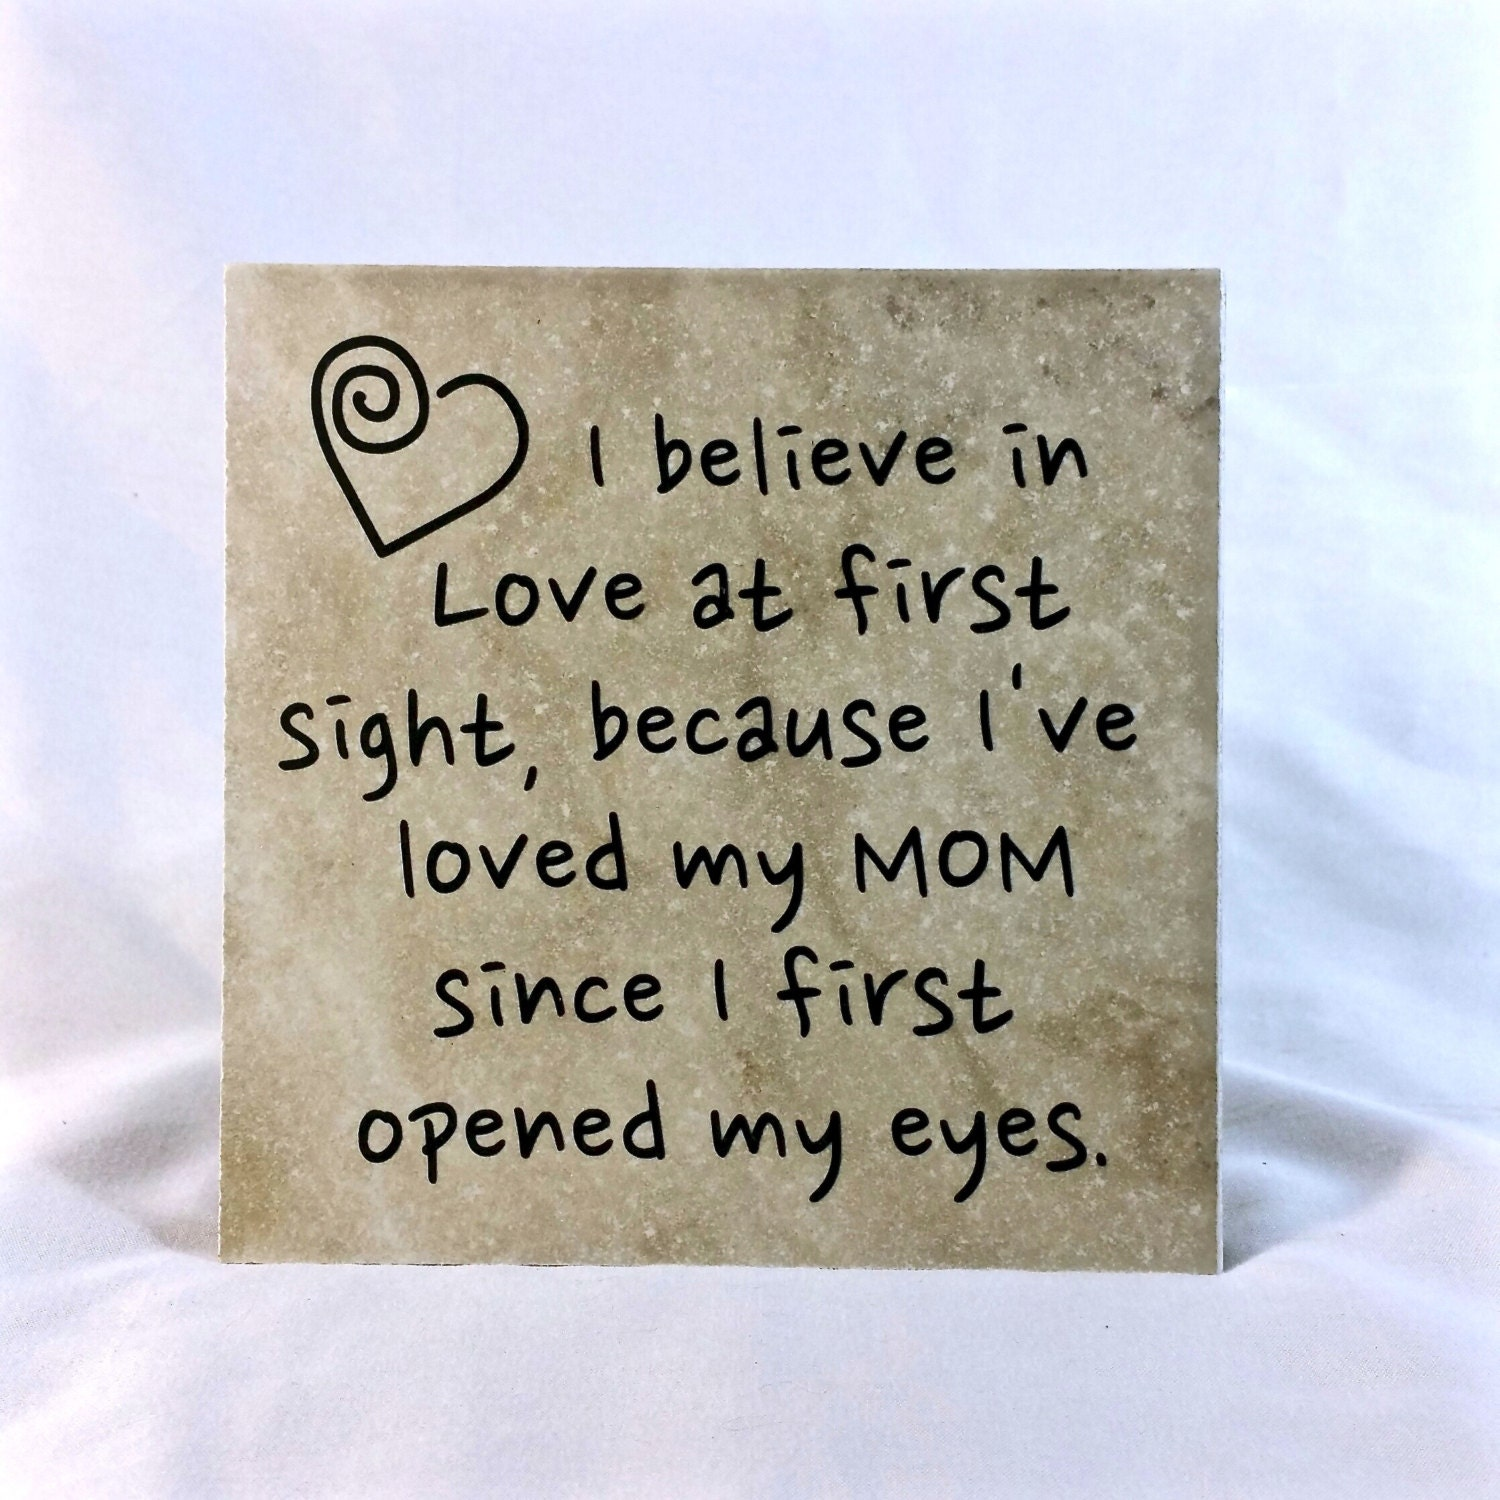 Quotes About Love At First Site: I Believe In Love At First Sight Saying Quote 6 X 6 Tile